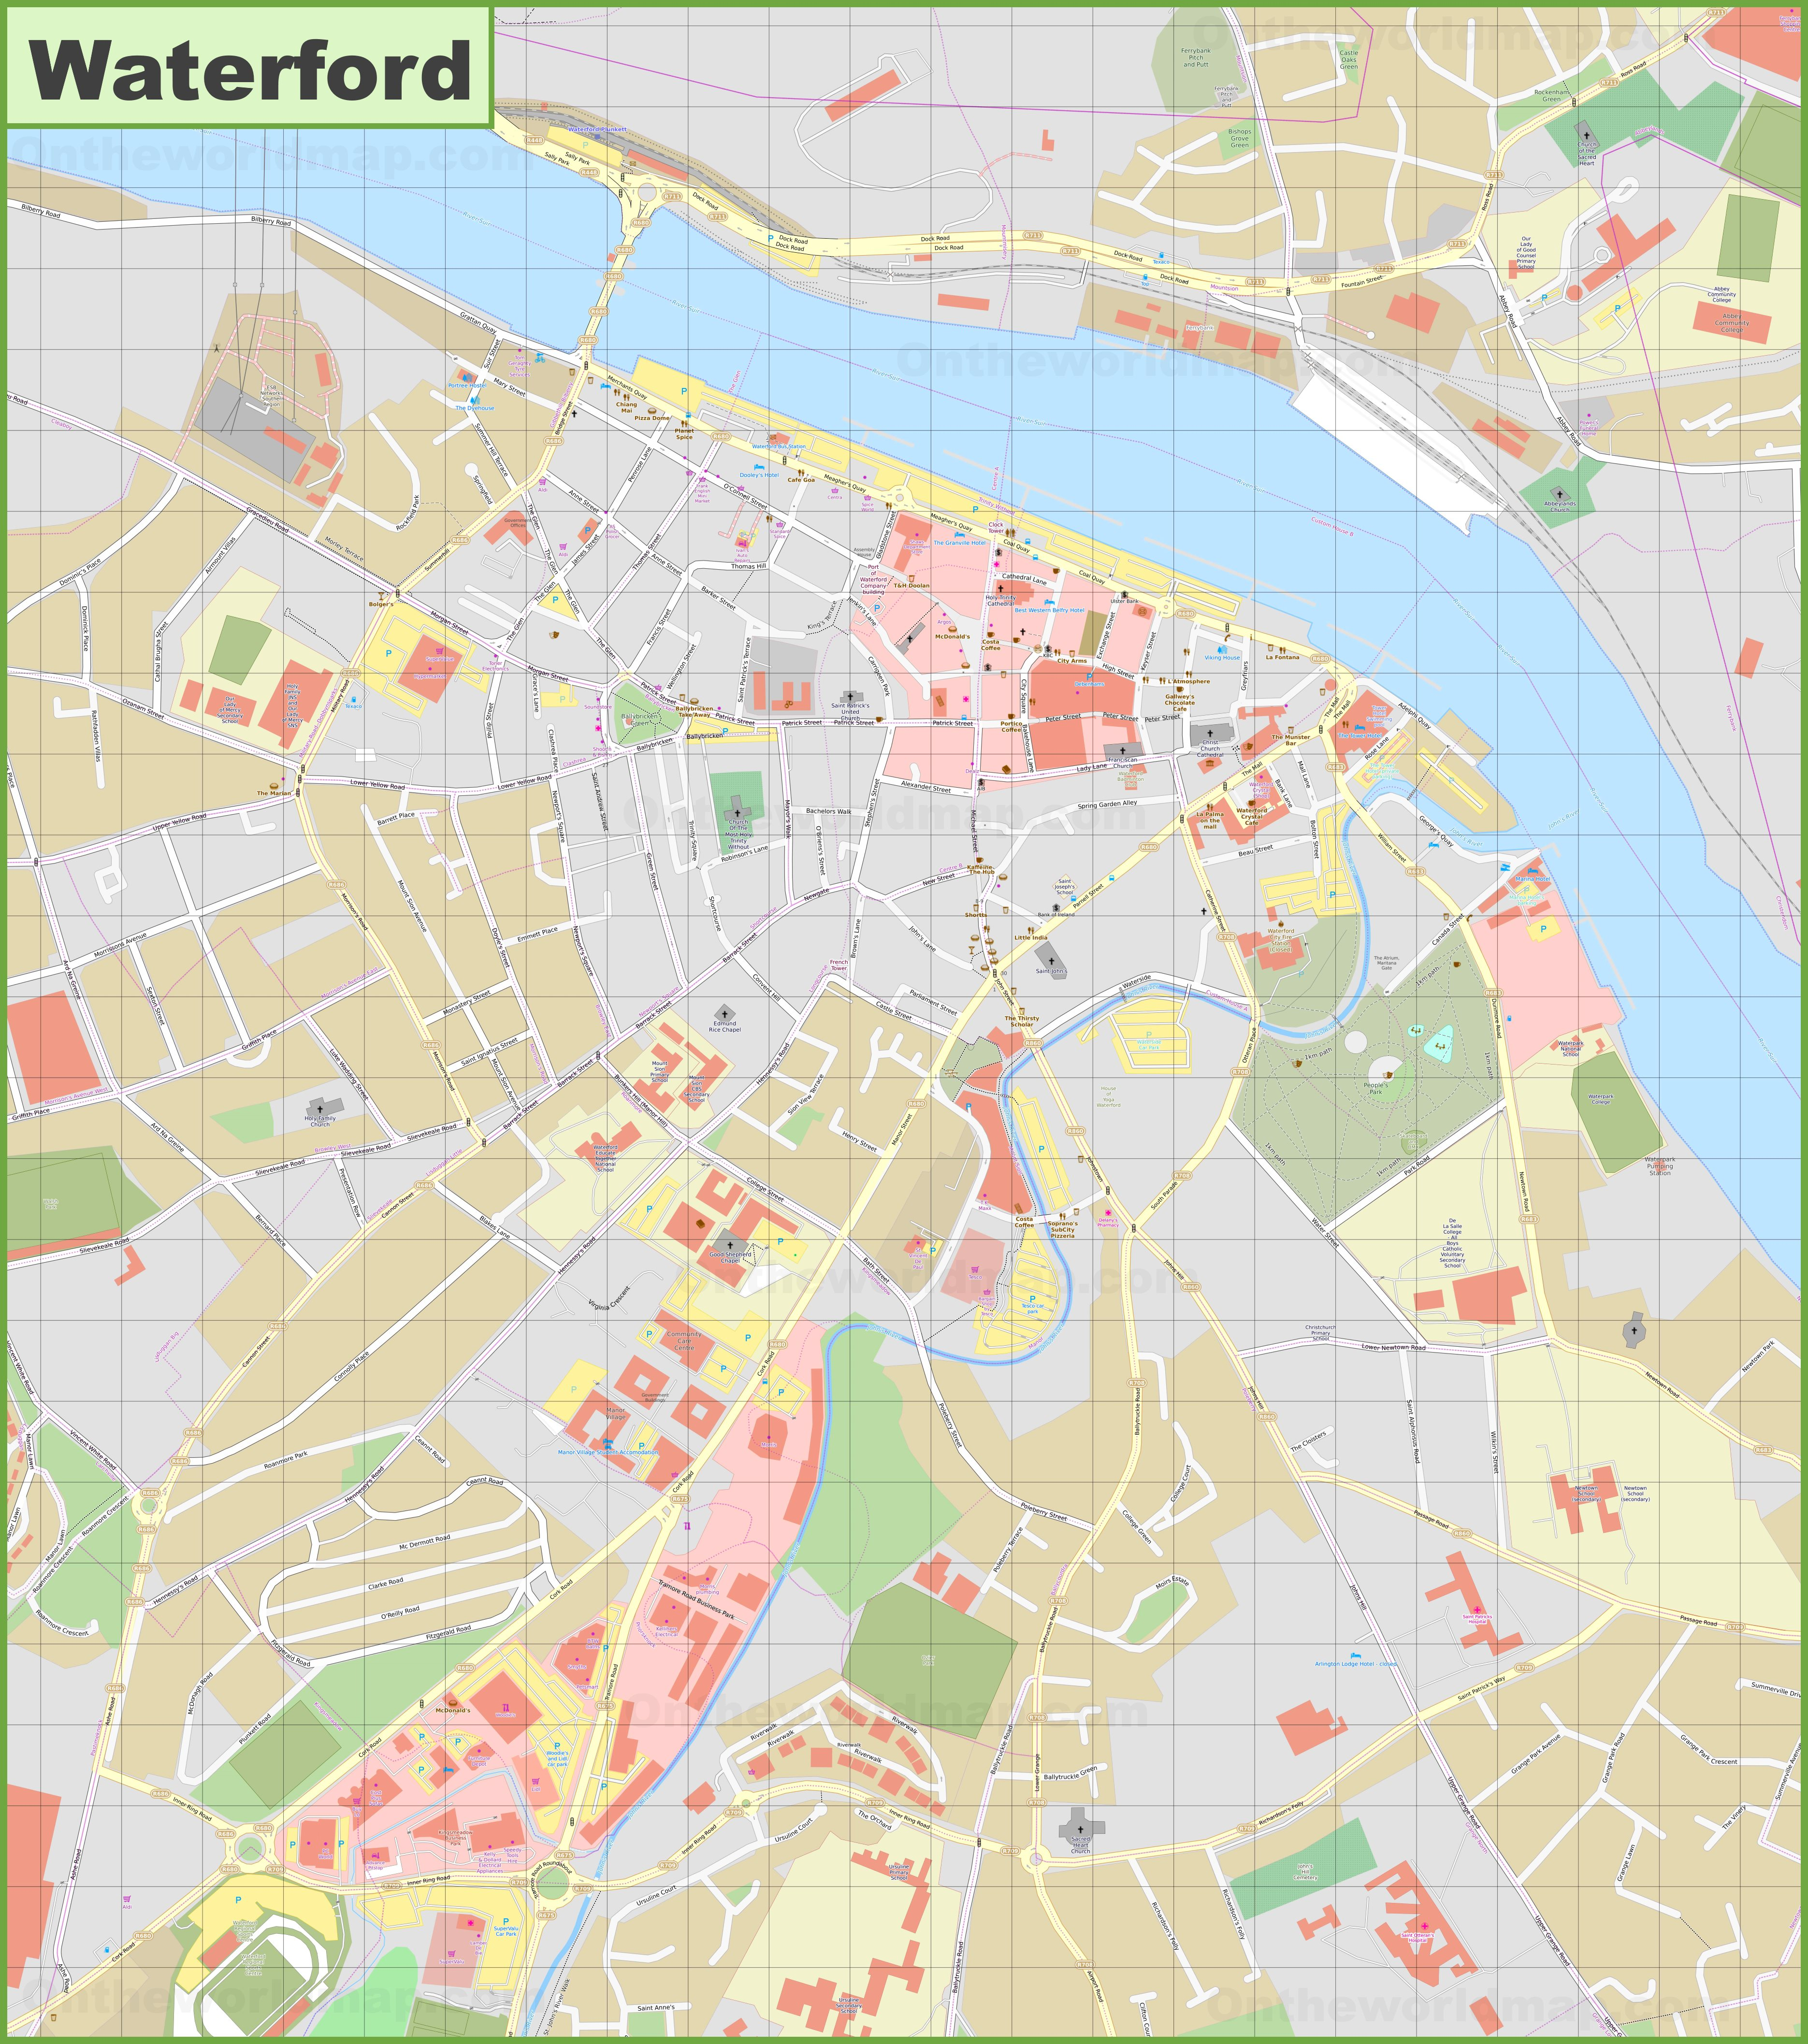 Map Of Waterford Ireland.Large Detailed Map Of Waterford